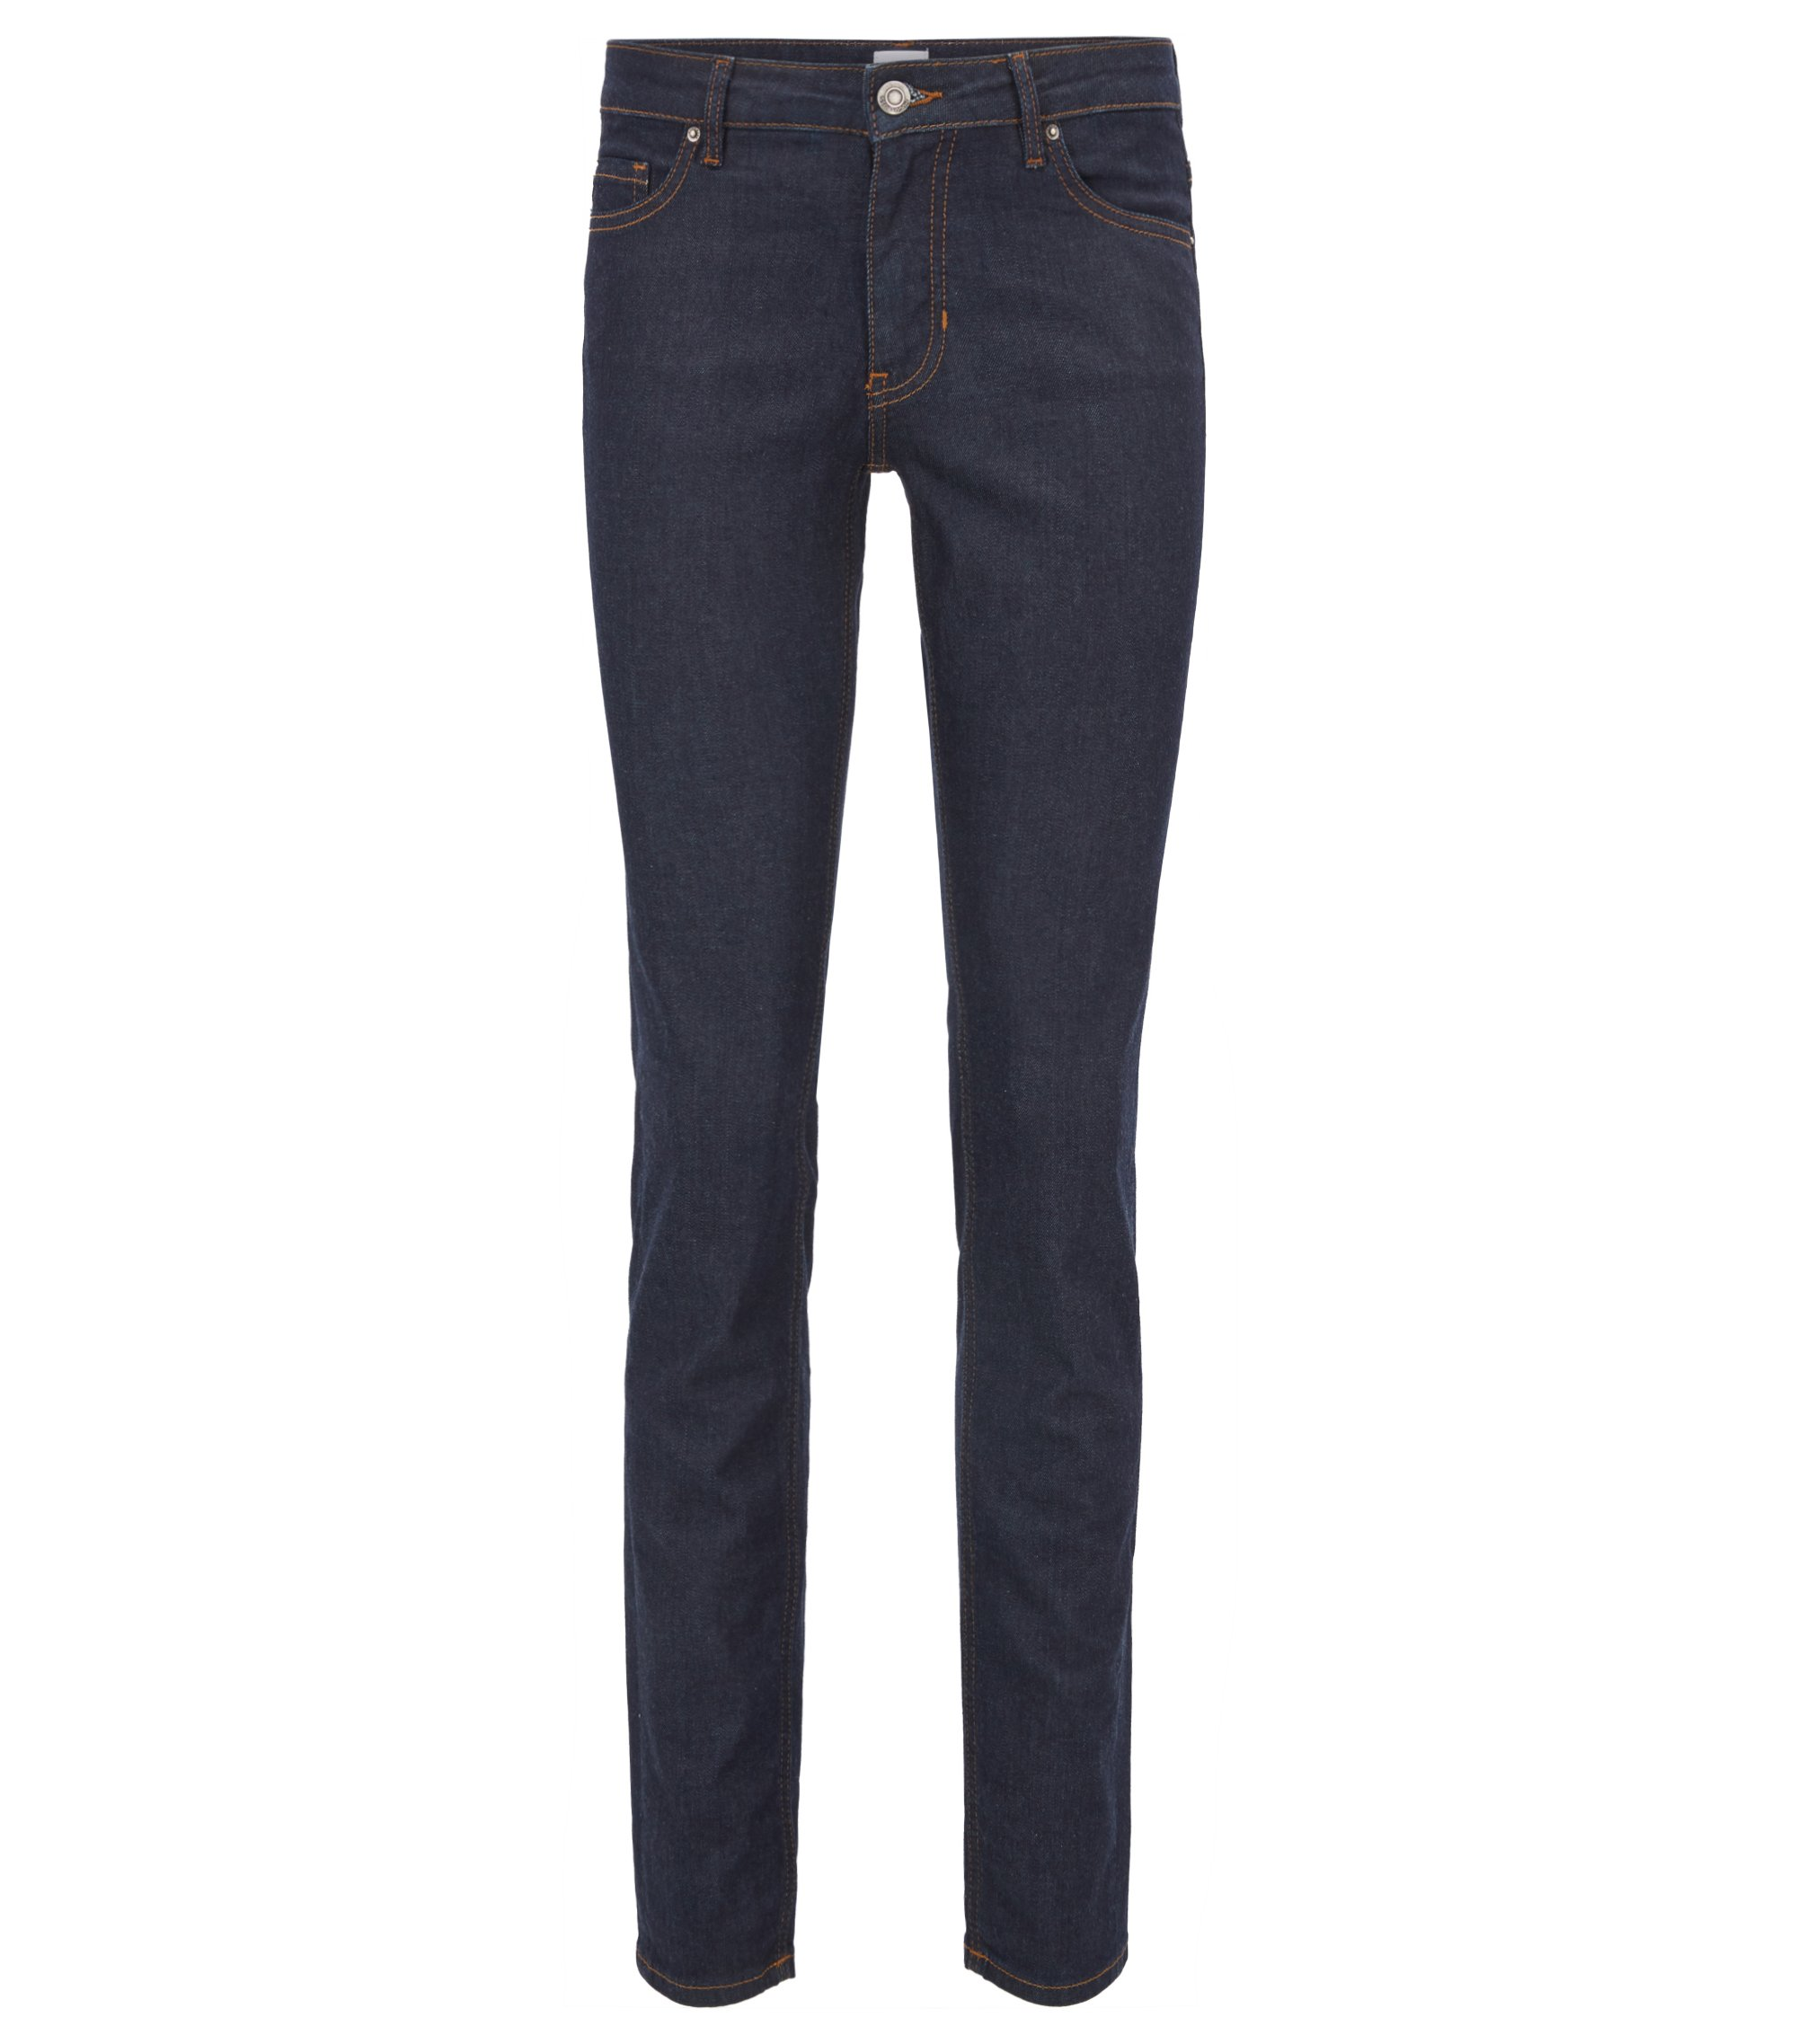 Jeans slim fit in denim elasticizzato blu intenso, Blu scuro